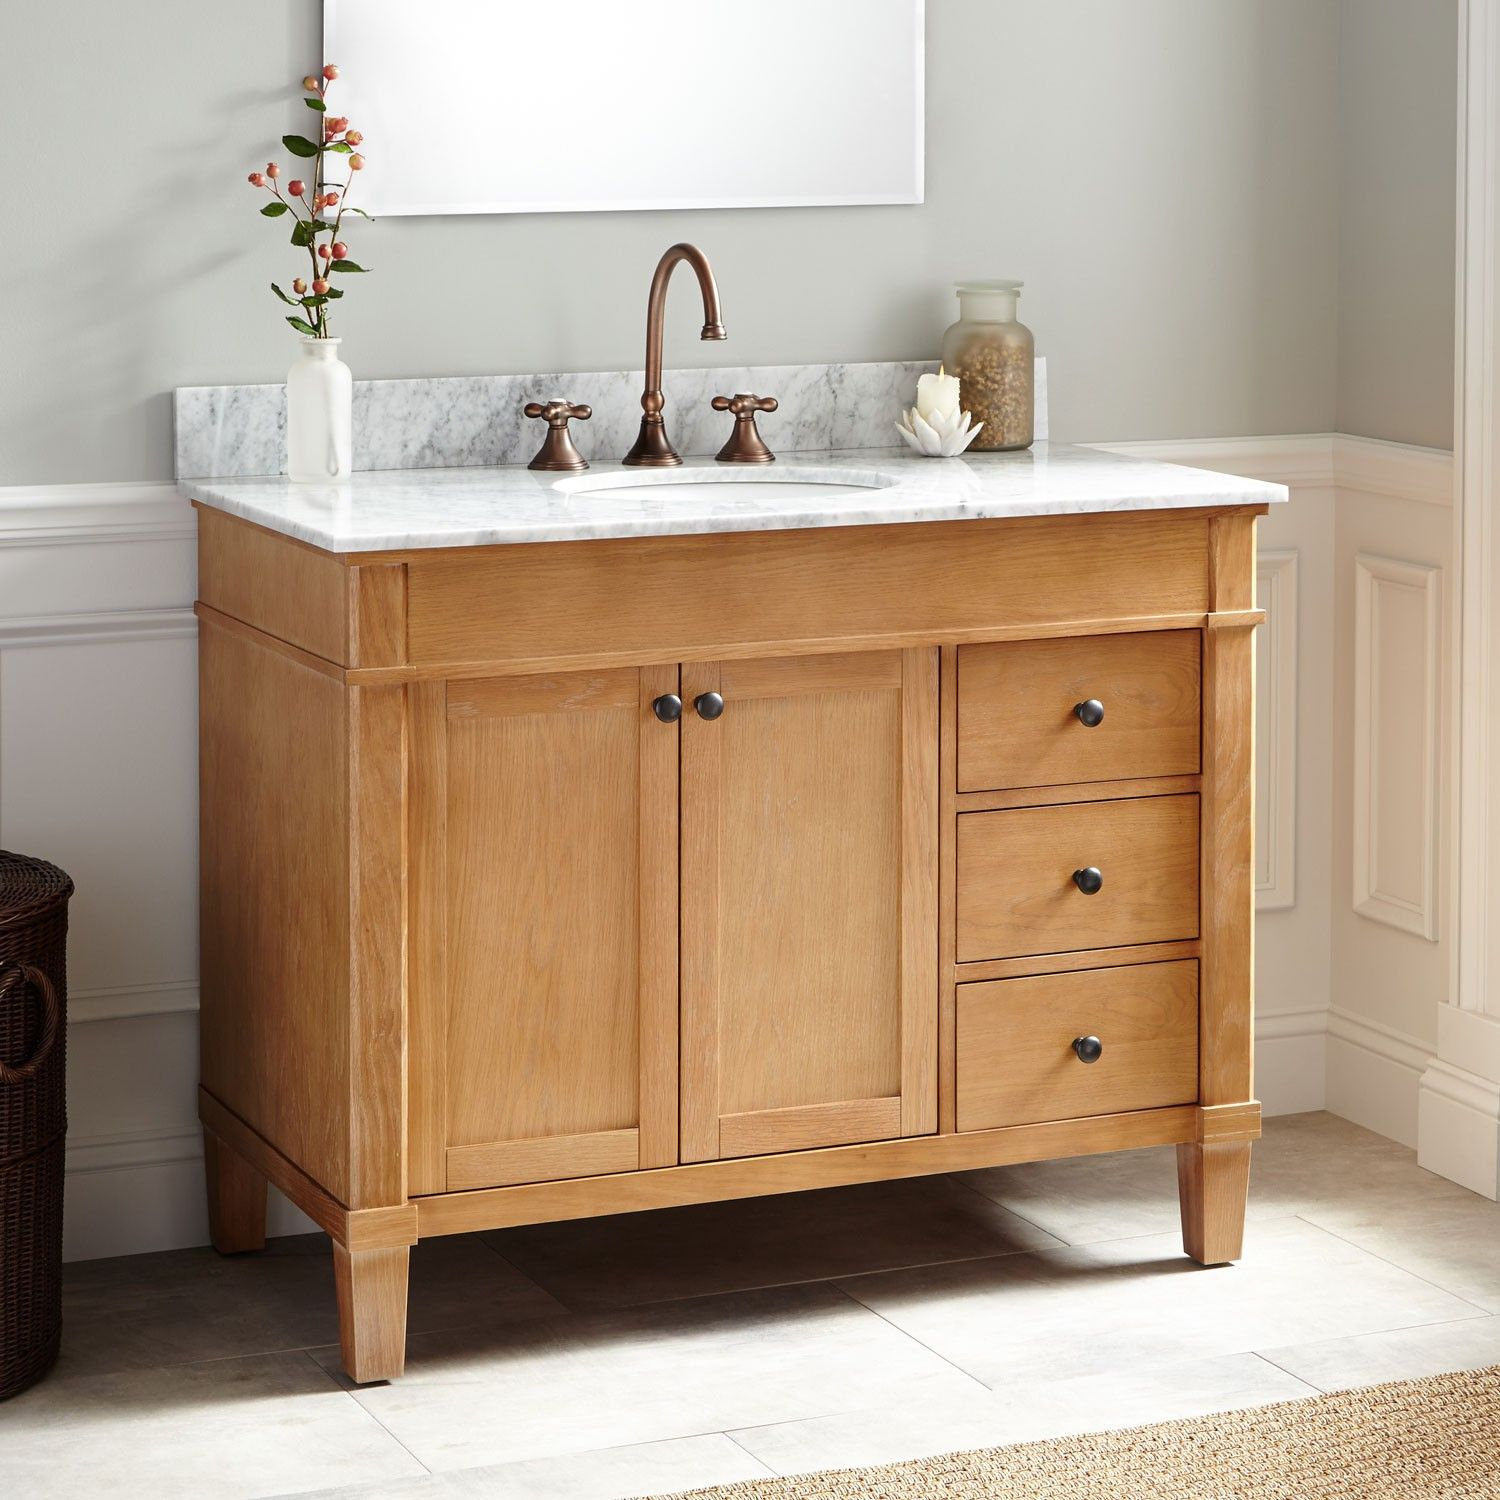 42 Marilla Oak Vanity Undermount Sink Vanities Bathroom